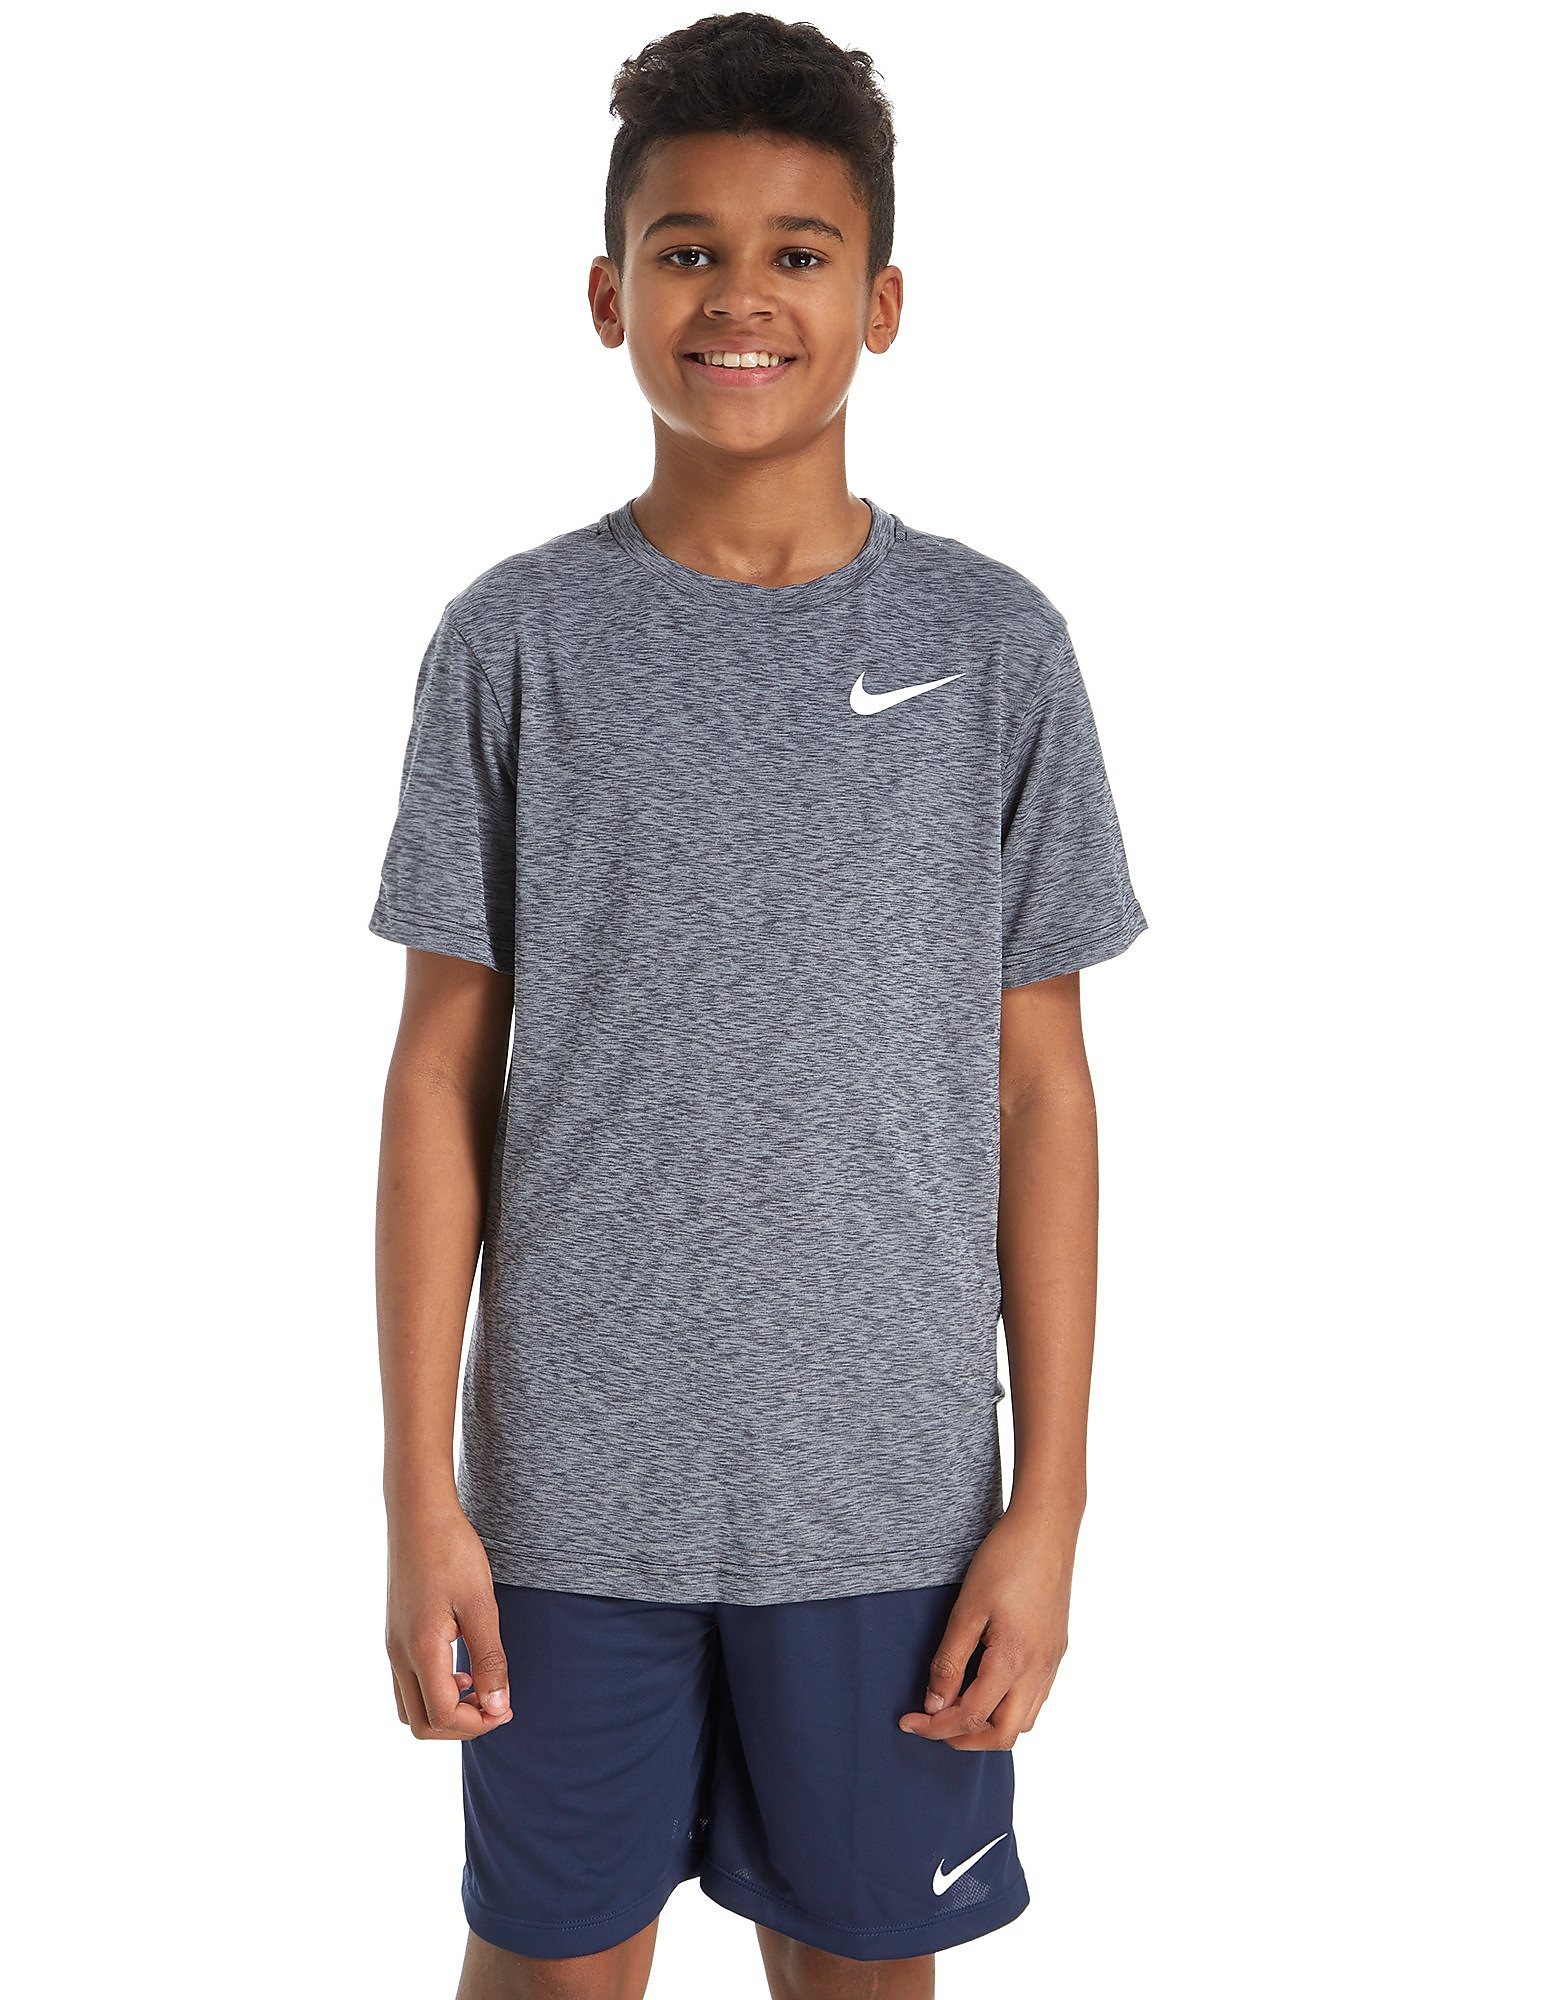 Nike Dri-FIT T-Shirt Junior